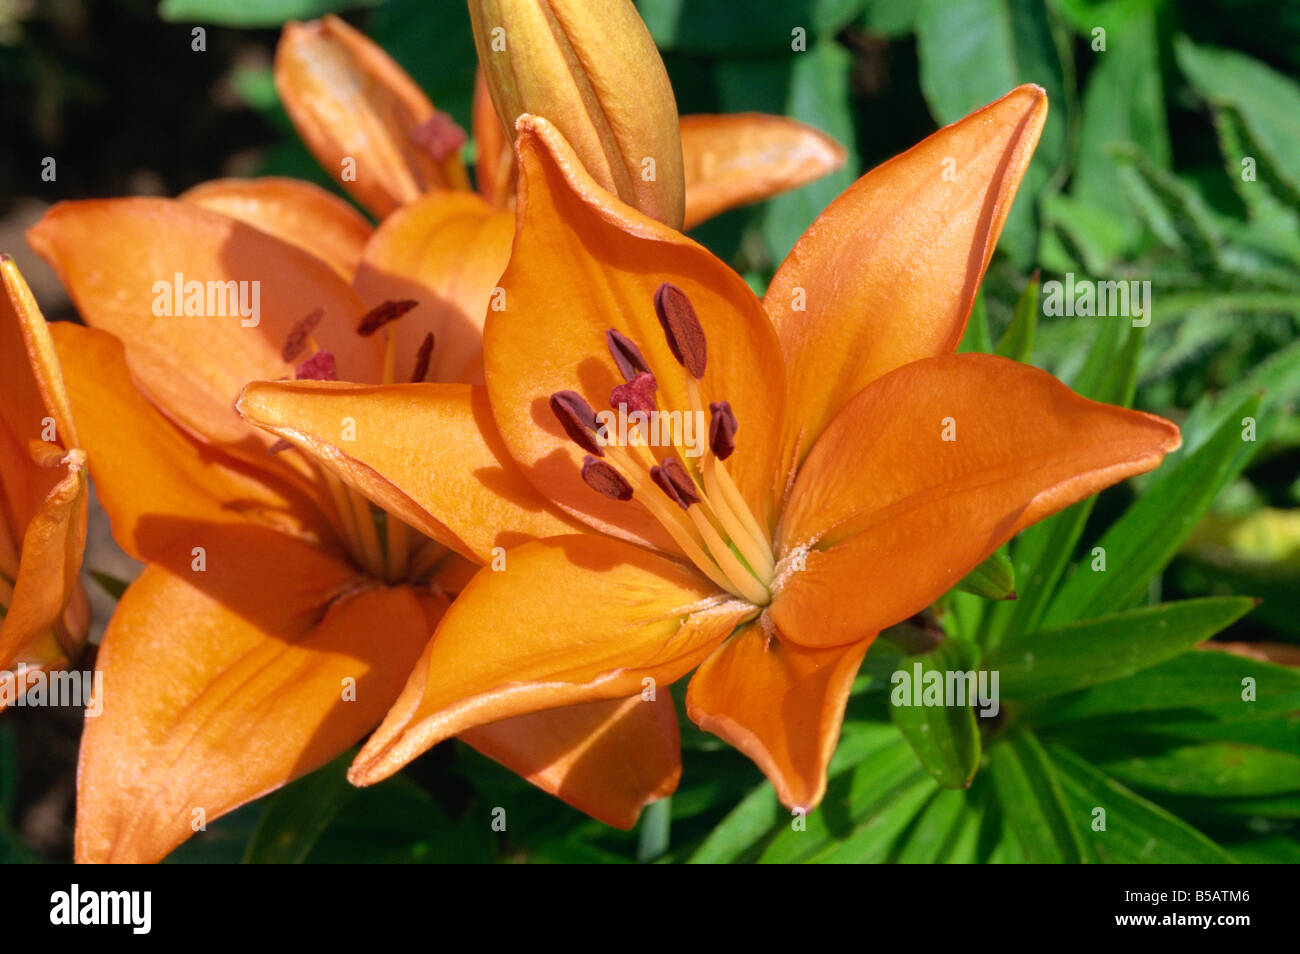 Close up of orange flowers of lilies lilium speciosum taken in june close up of orange flowers of lilies lilium speciosum taken in june in devon m h black izmirmasajfo